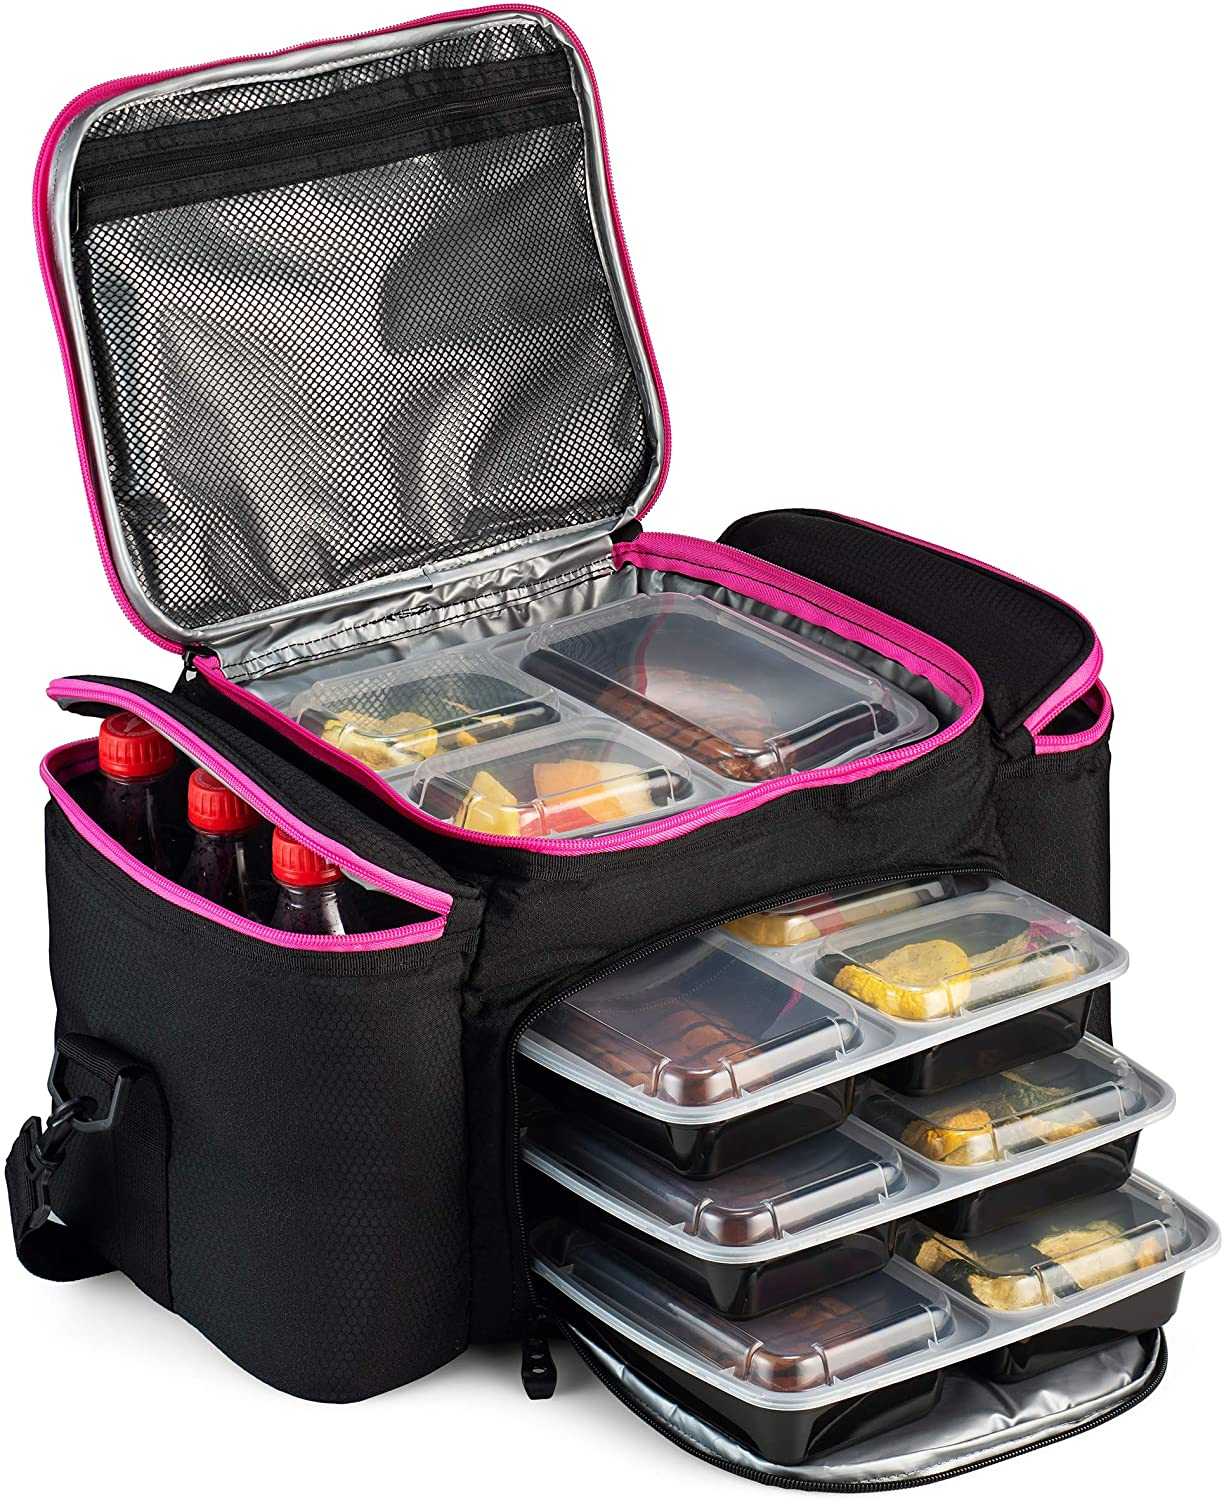 Cooler Bag Insulated By Outdoorwares Large Capacity Durable, To Keep Foods And Drinks In The Right Temperature - Good For Travel, Picnic, Beach Hiking, Camping ETC.(Containers Not Included)